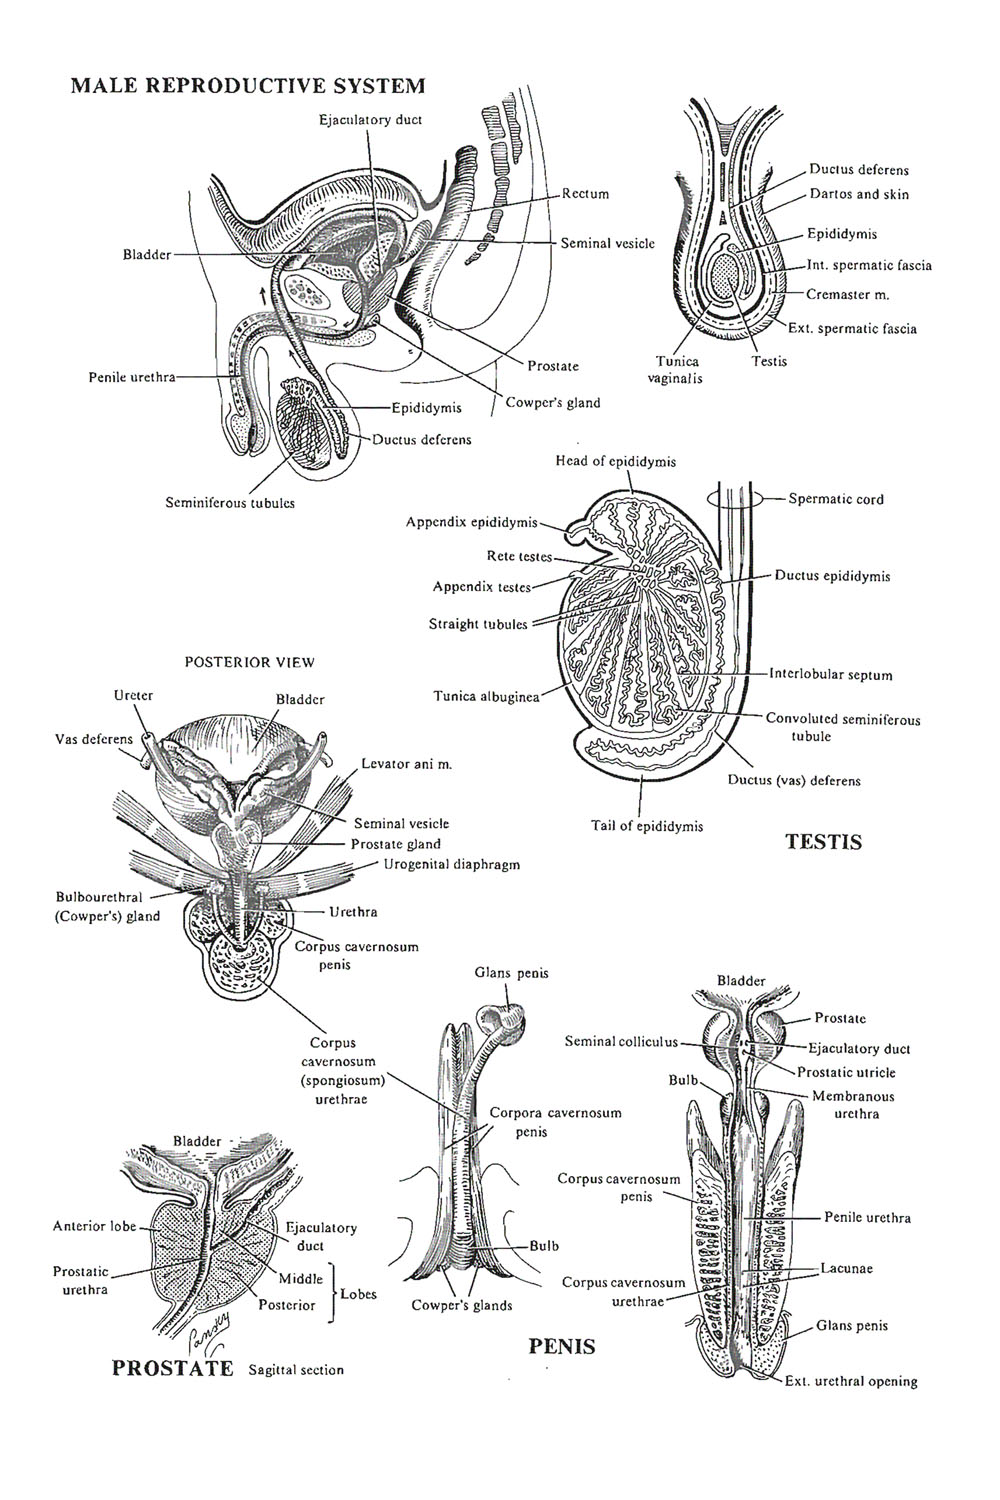 the male reproductive system: image #1